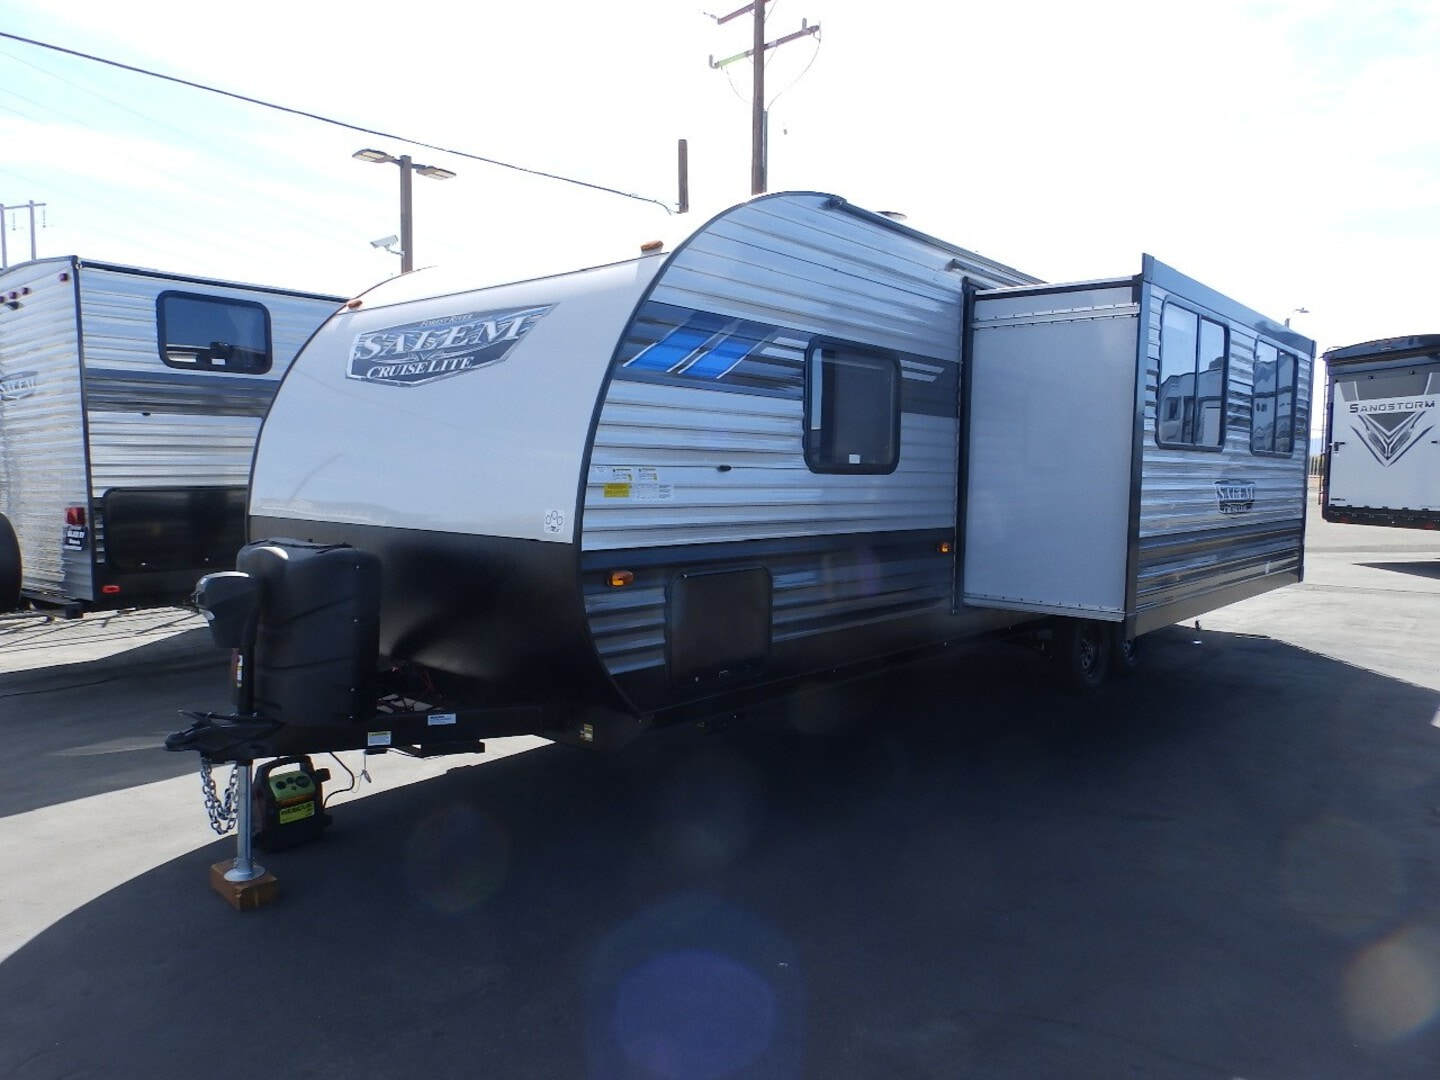 New, 2022, Forest River, SALEM 263BHXL, 1 SLIDE, REAR BUNKS, POWER PACKAGE, EXTERIOR CAMP KITCHEN, FRONT QUEEN BED, SLEEPS 7, FIREPLACE, EXTERIOR SHOWER, Travel Trailers